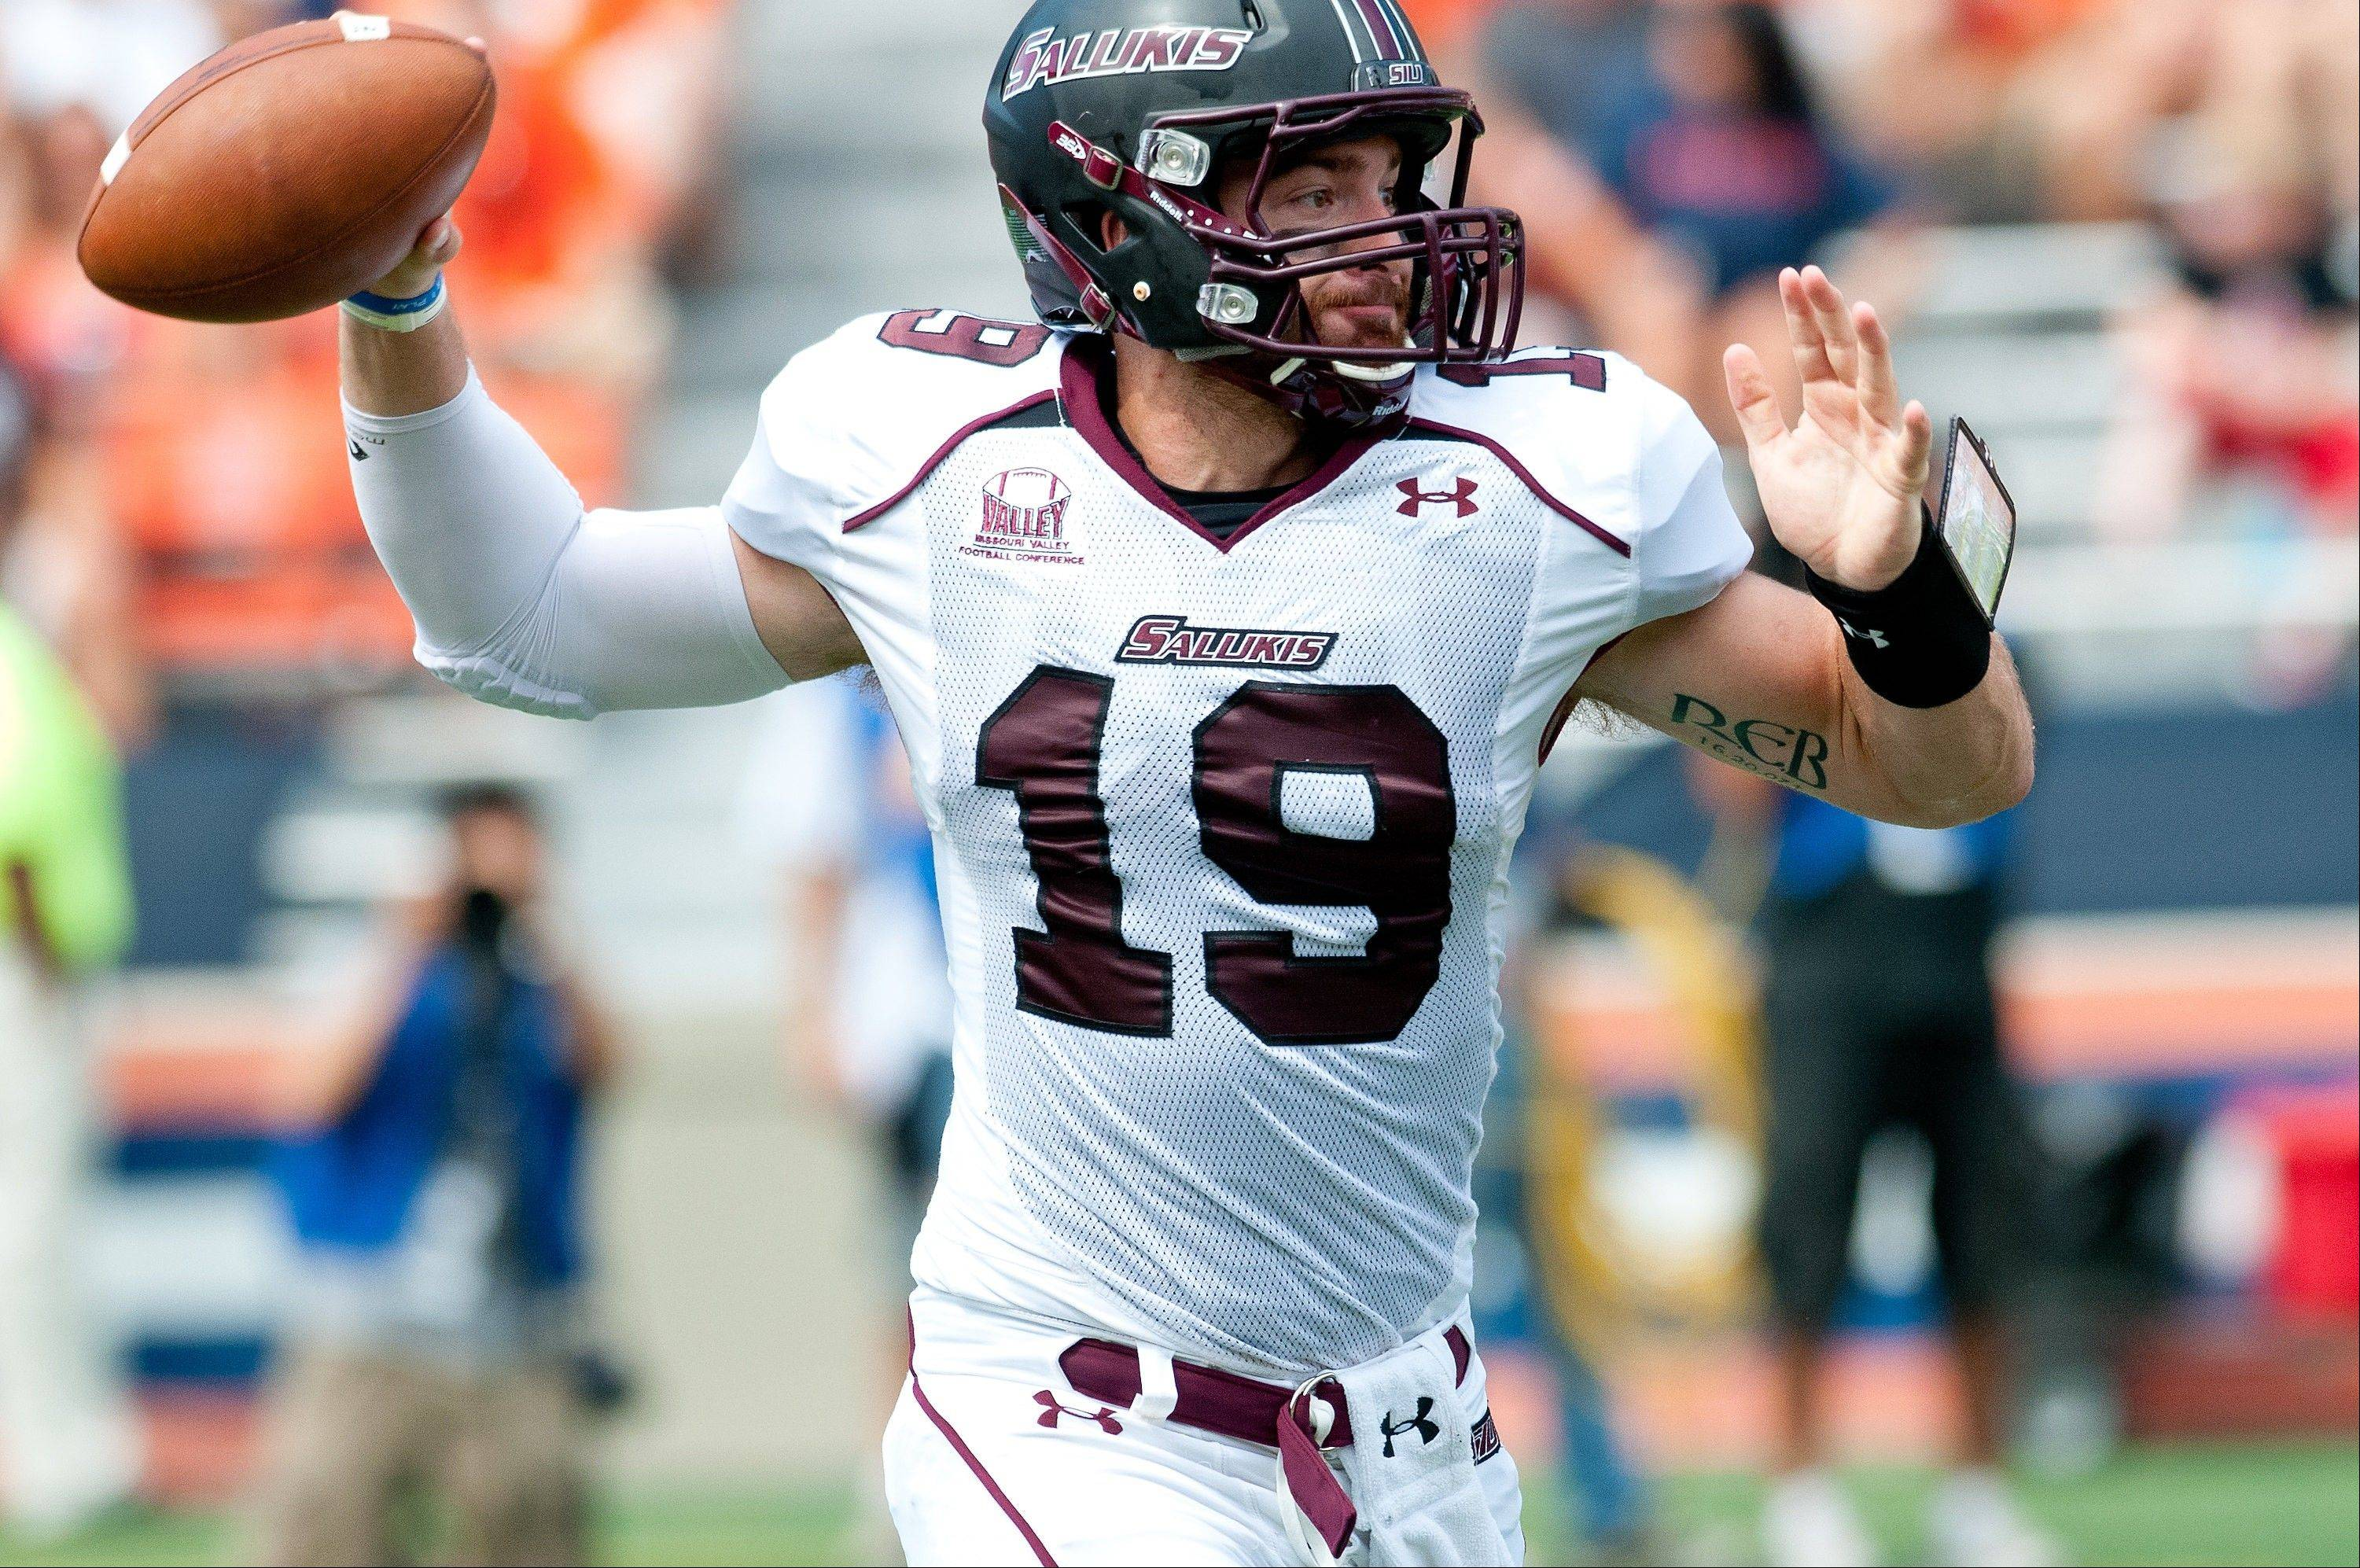 Southern Illinois quarterback Kory Faulkner (19) throws a pass against Illinois during the first half of an NCAA college foot